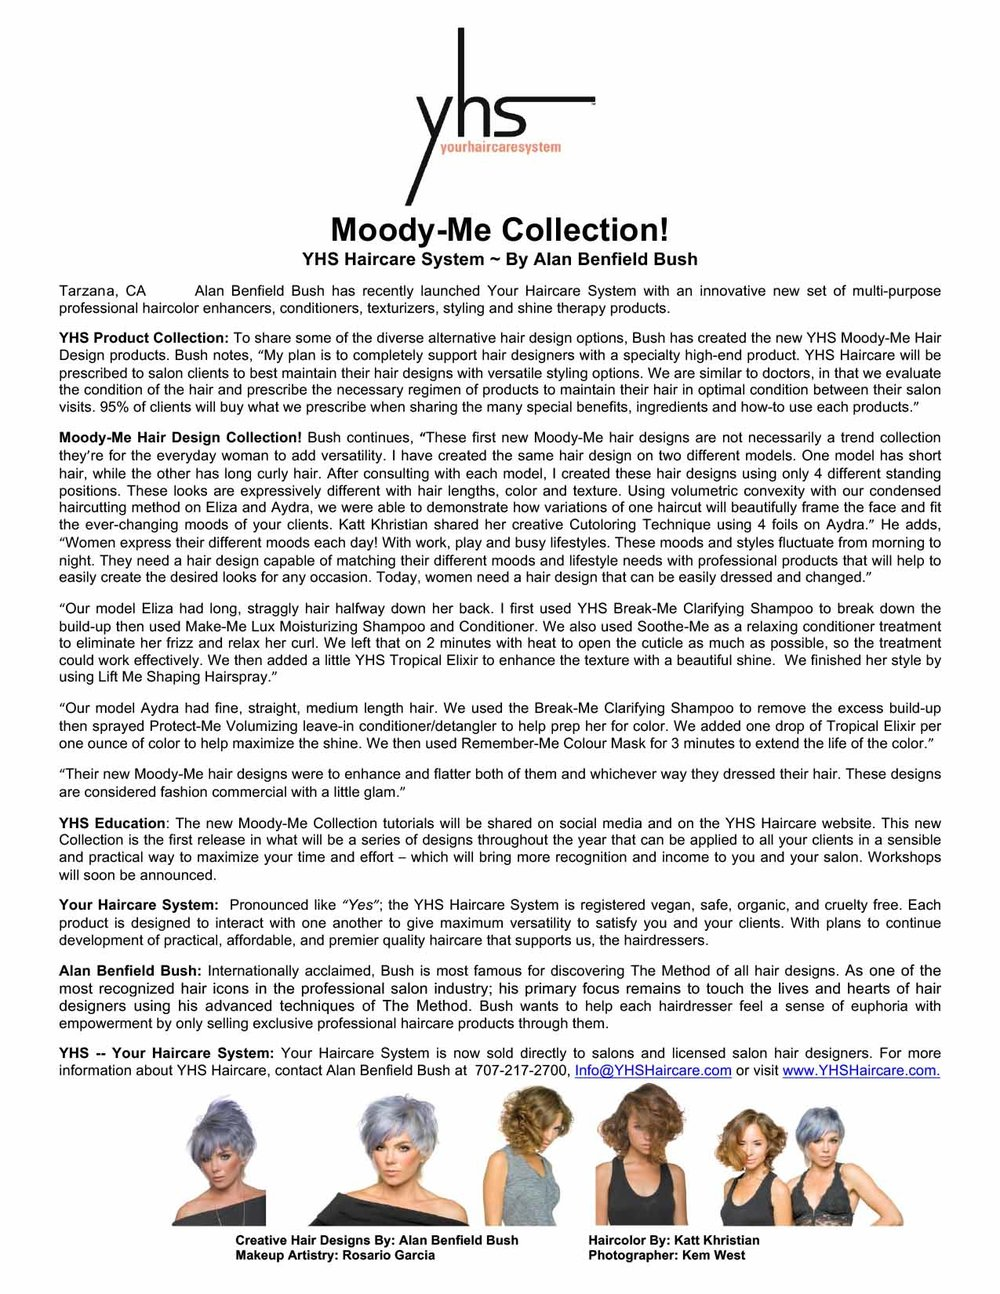 YHS -- PR Your Haircare System -- Moody-Me Collection-FNL WEB Mar28,17.jpg